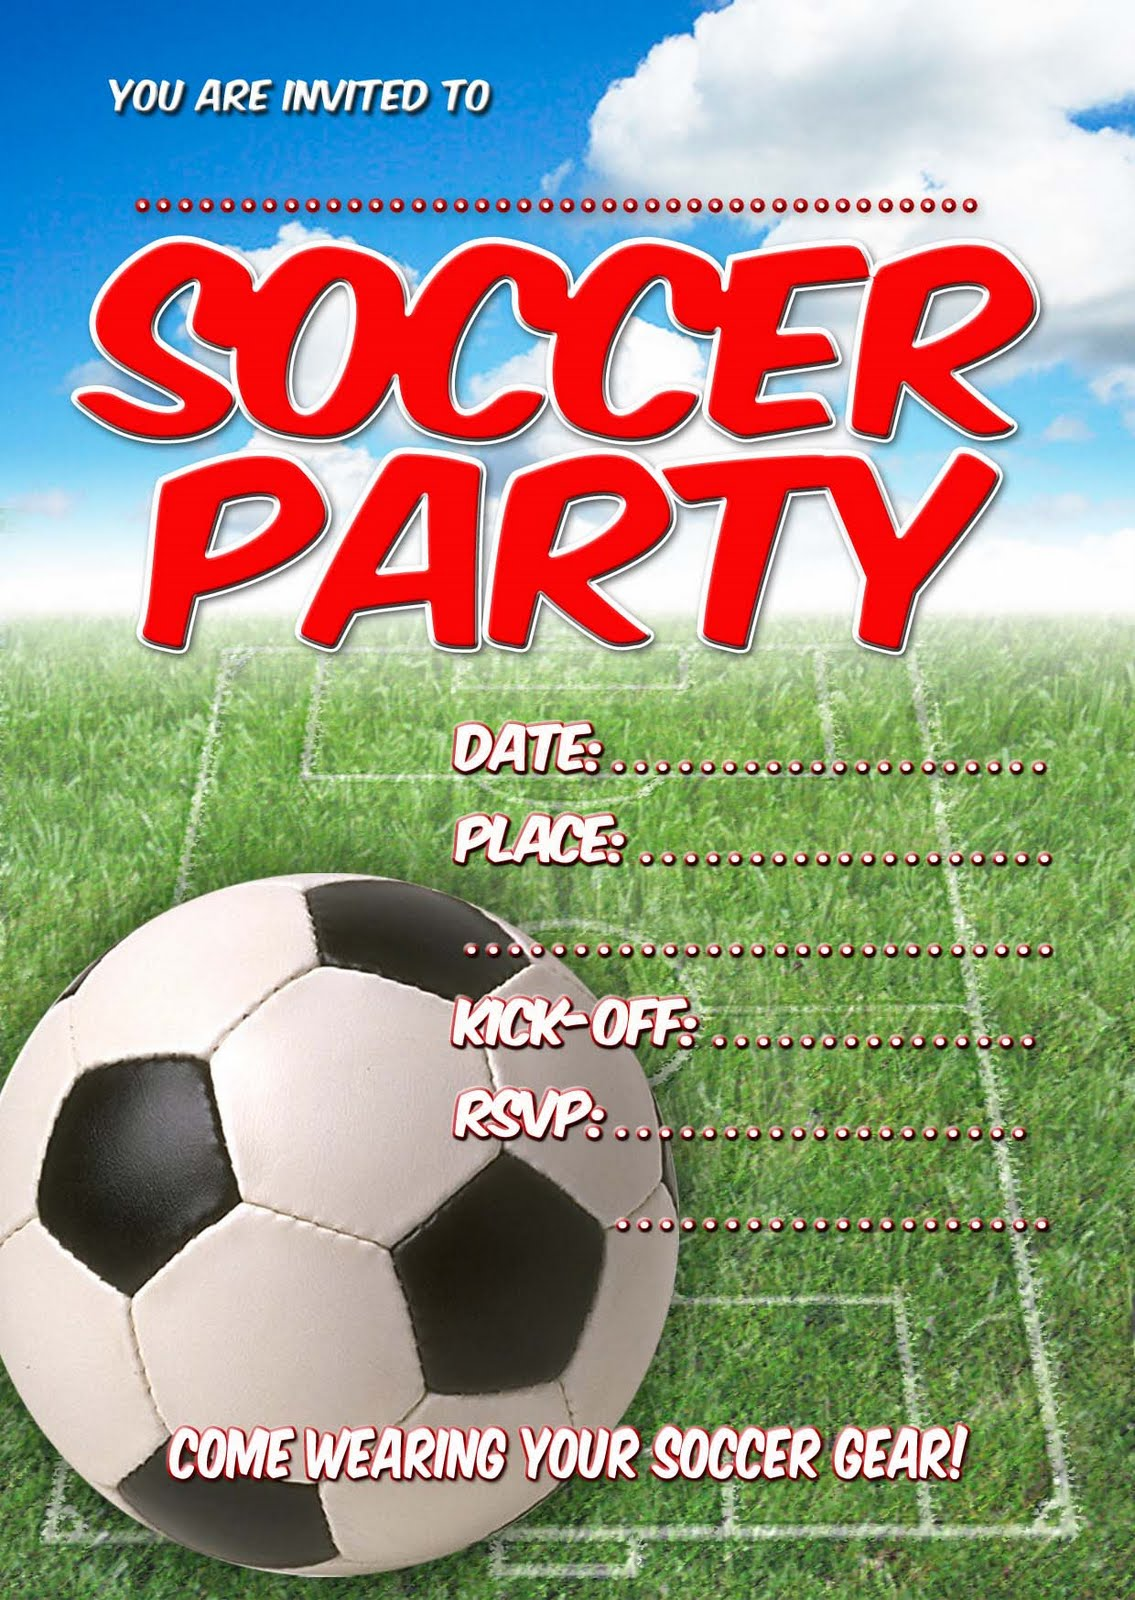 FREE Kids Party Invitations: Soccer Party Invitation